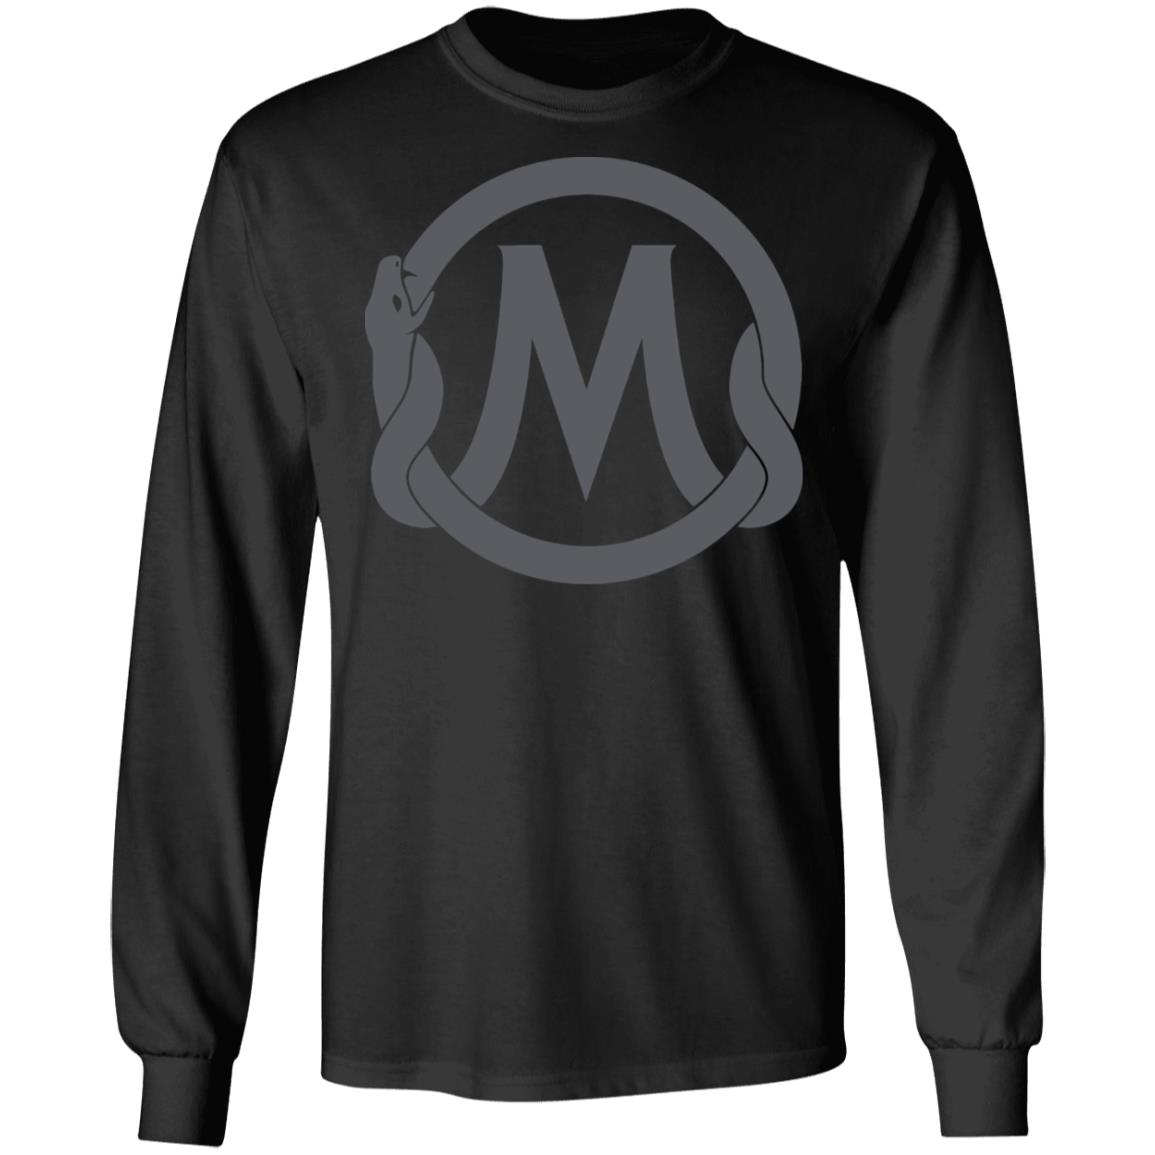 Mamba sports academy team core black long sleeve shirt